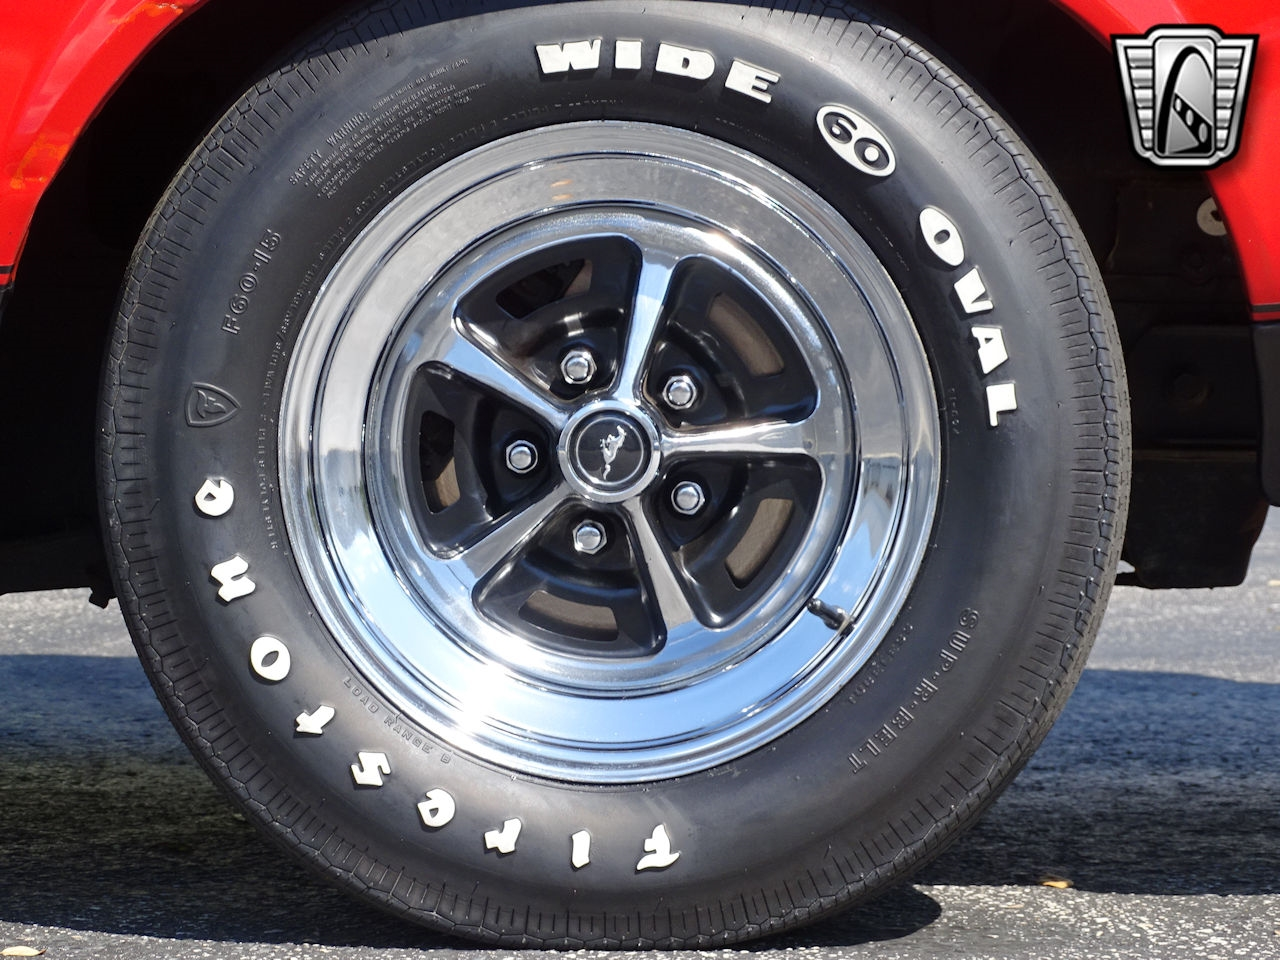 Details about 1971 Ford Mustang Mach 1 Super Cobra Jet